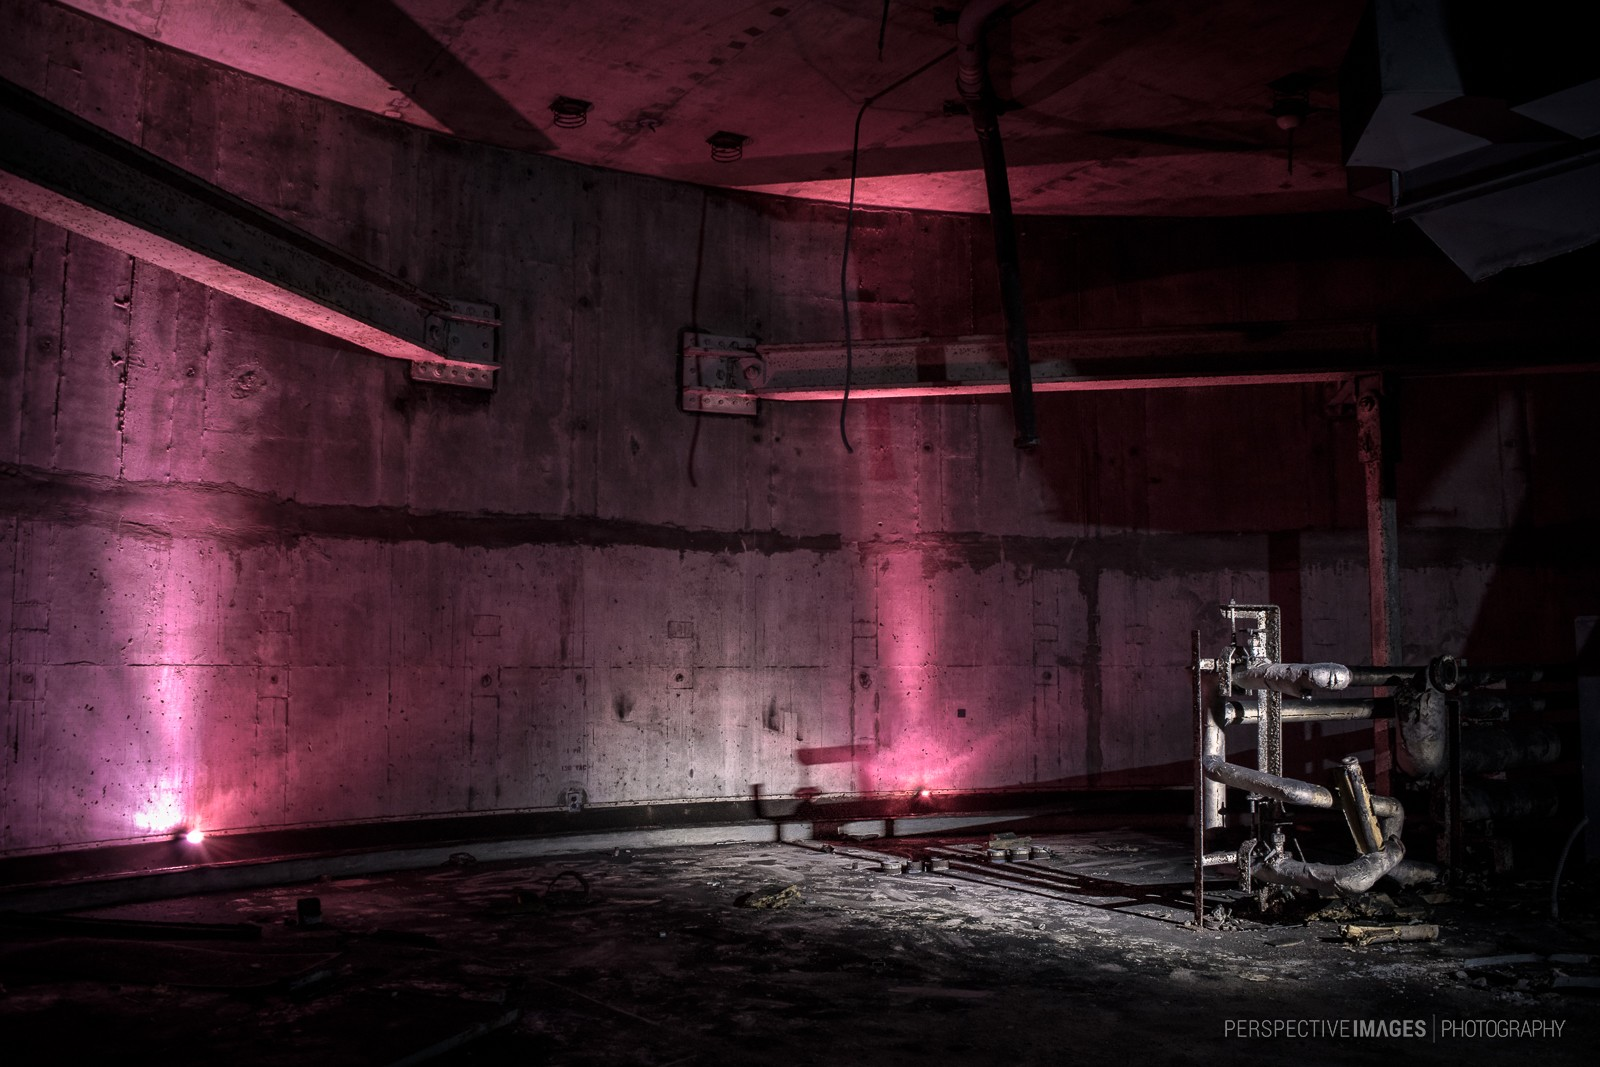 Caught in the Light - Top floor of launch area 3 of a Titan 1 missile base.